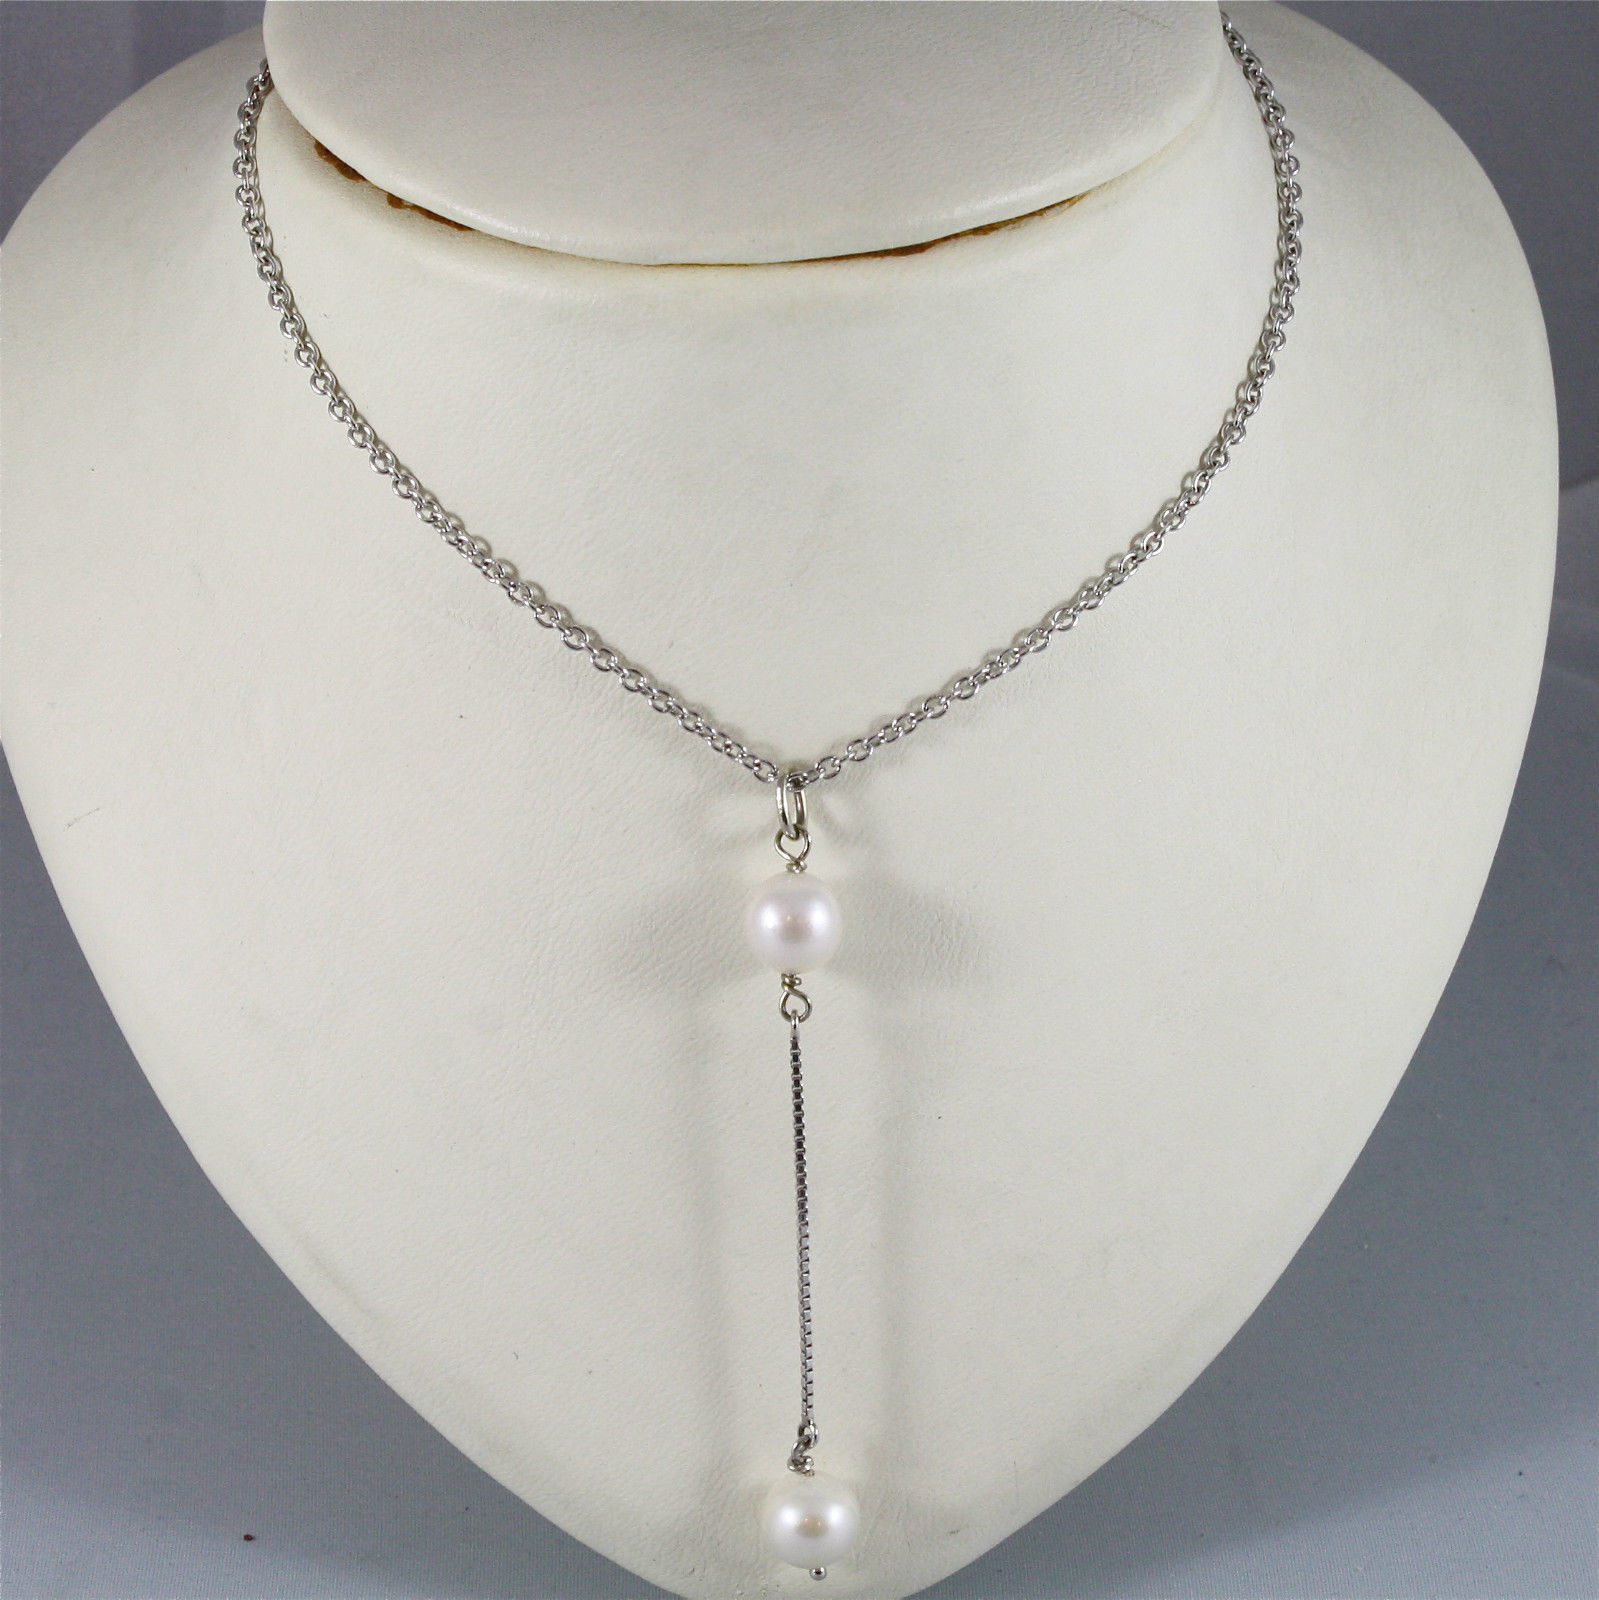 18K WHITE GOLD NECKLACE WITH PENDANT, WHITE PEARL DIAMETER 0.8 CM MADE IN ITALY